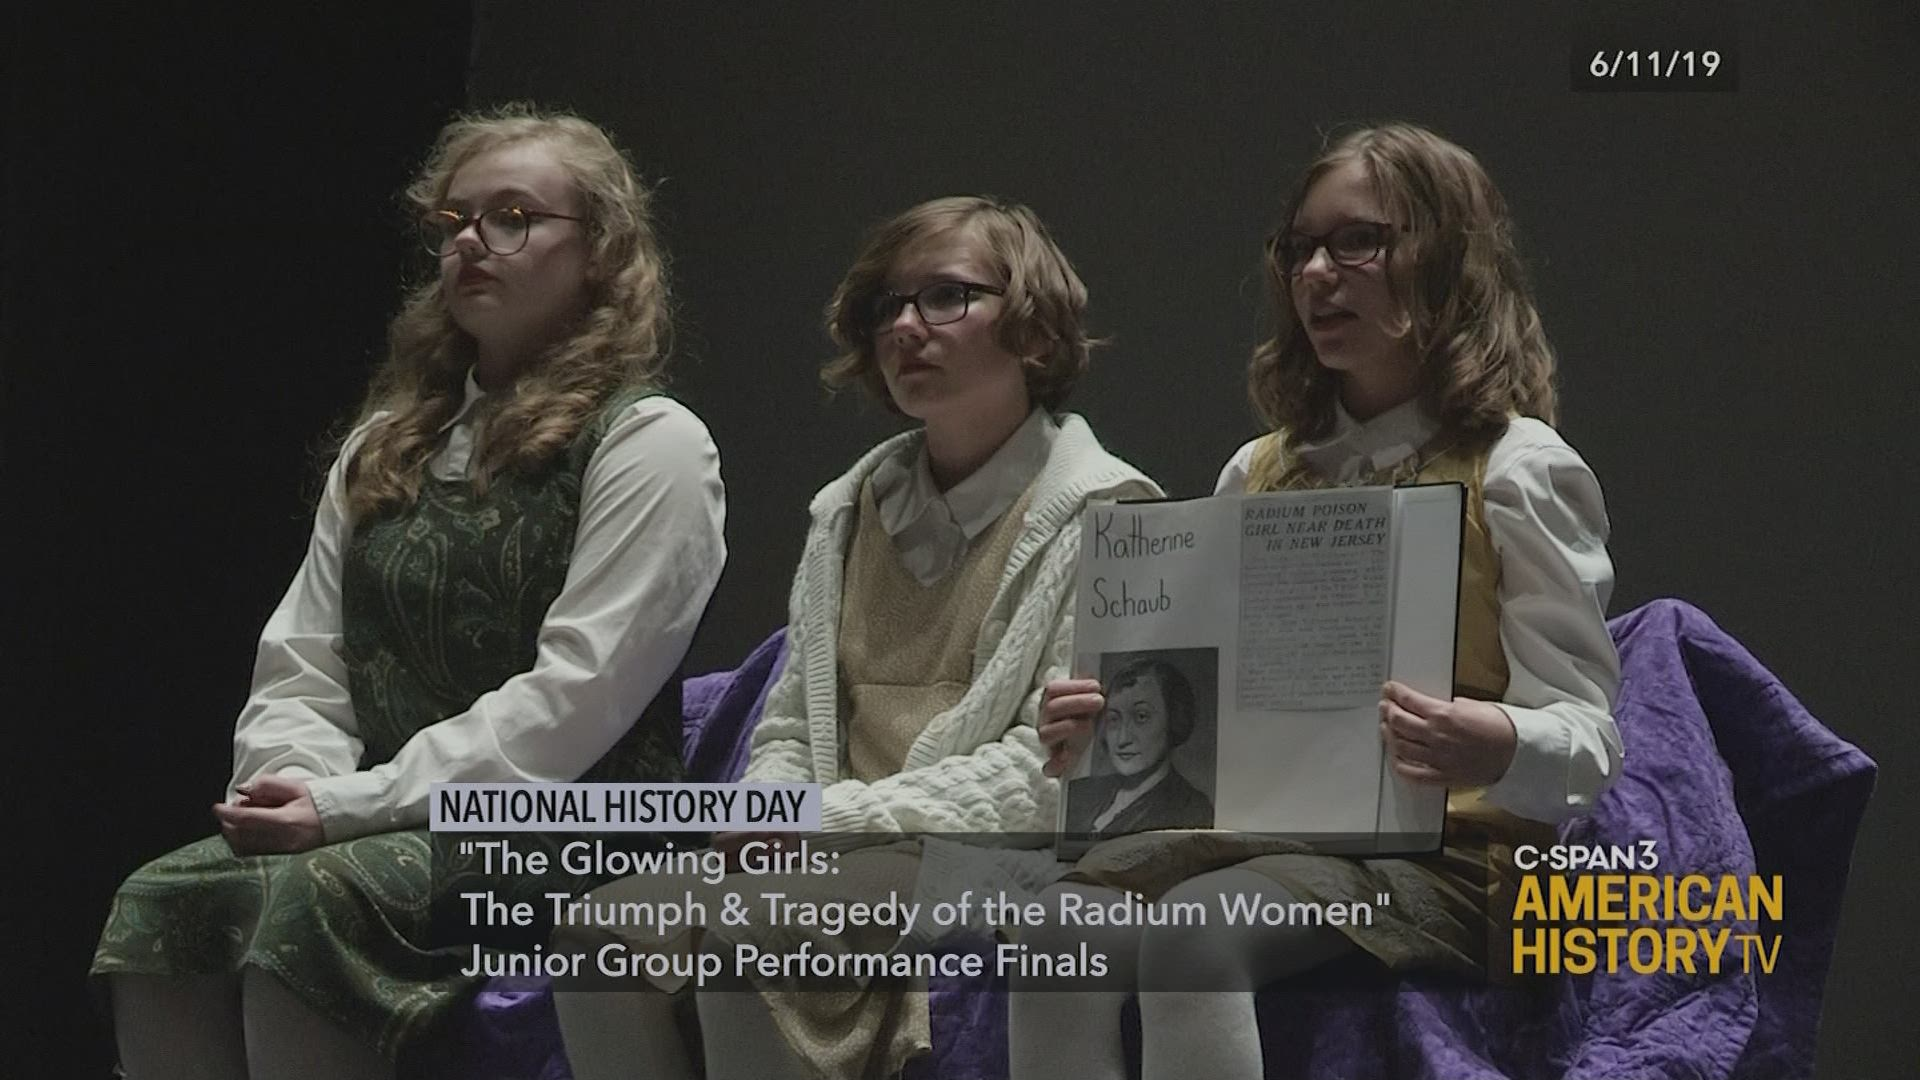 National History Day Glowing Girls The Triumph And Tragedy Of The Radium Women C Span Org